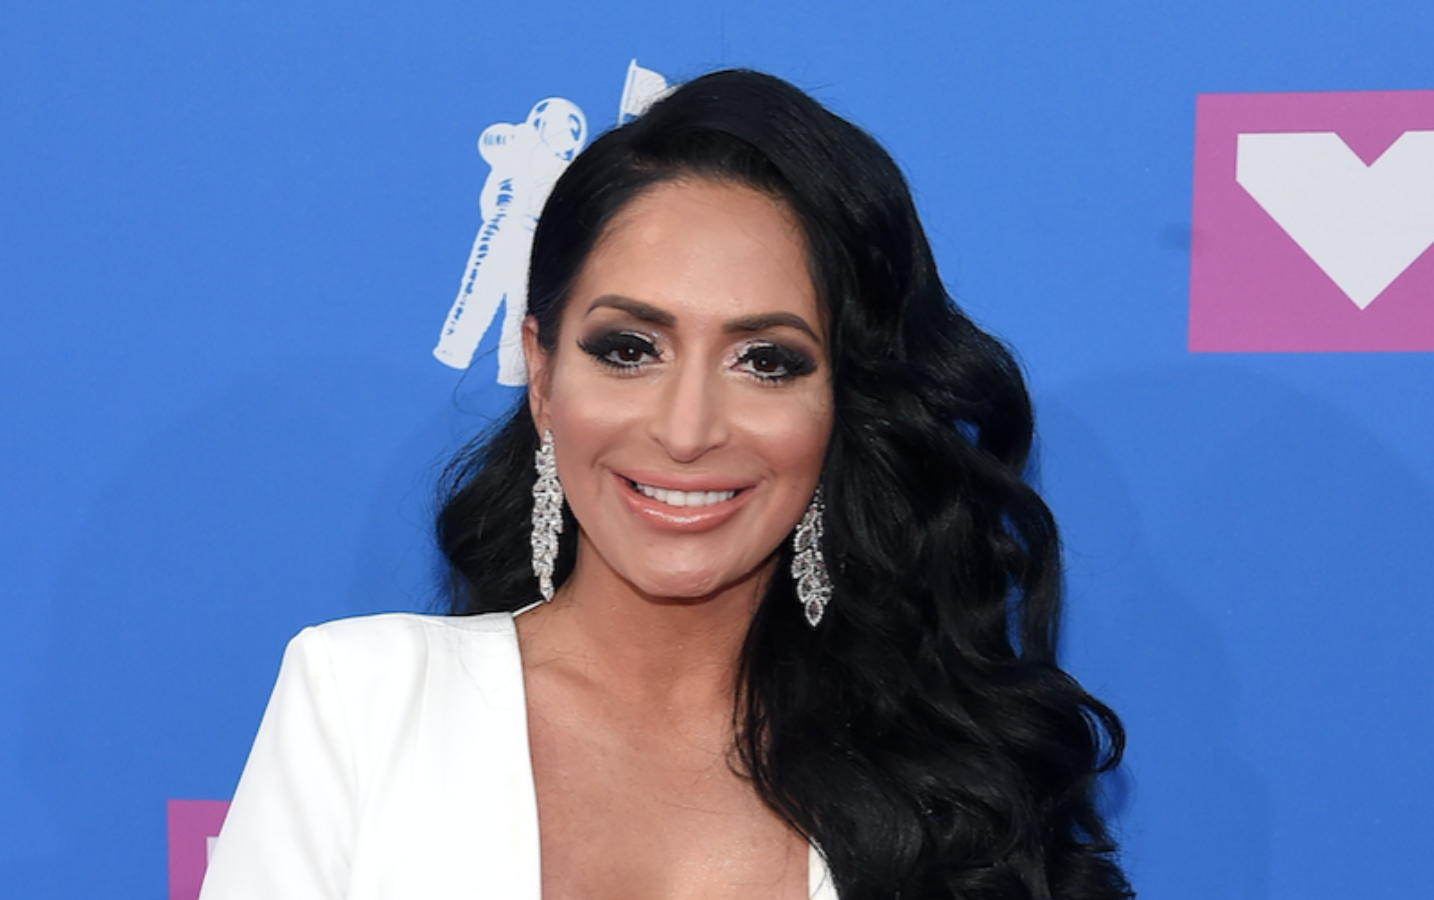 angelina-pivarnick-reveals-her-jersey-shore-castmates-helped-her-a-lot-amid-marital-problems